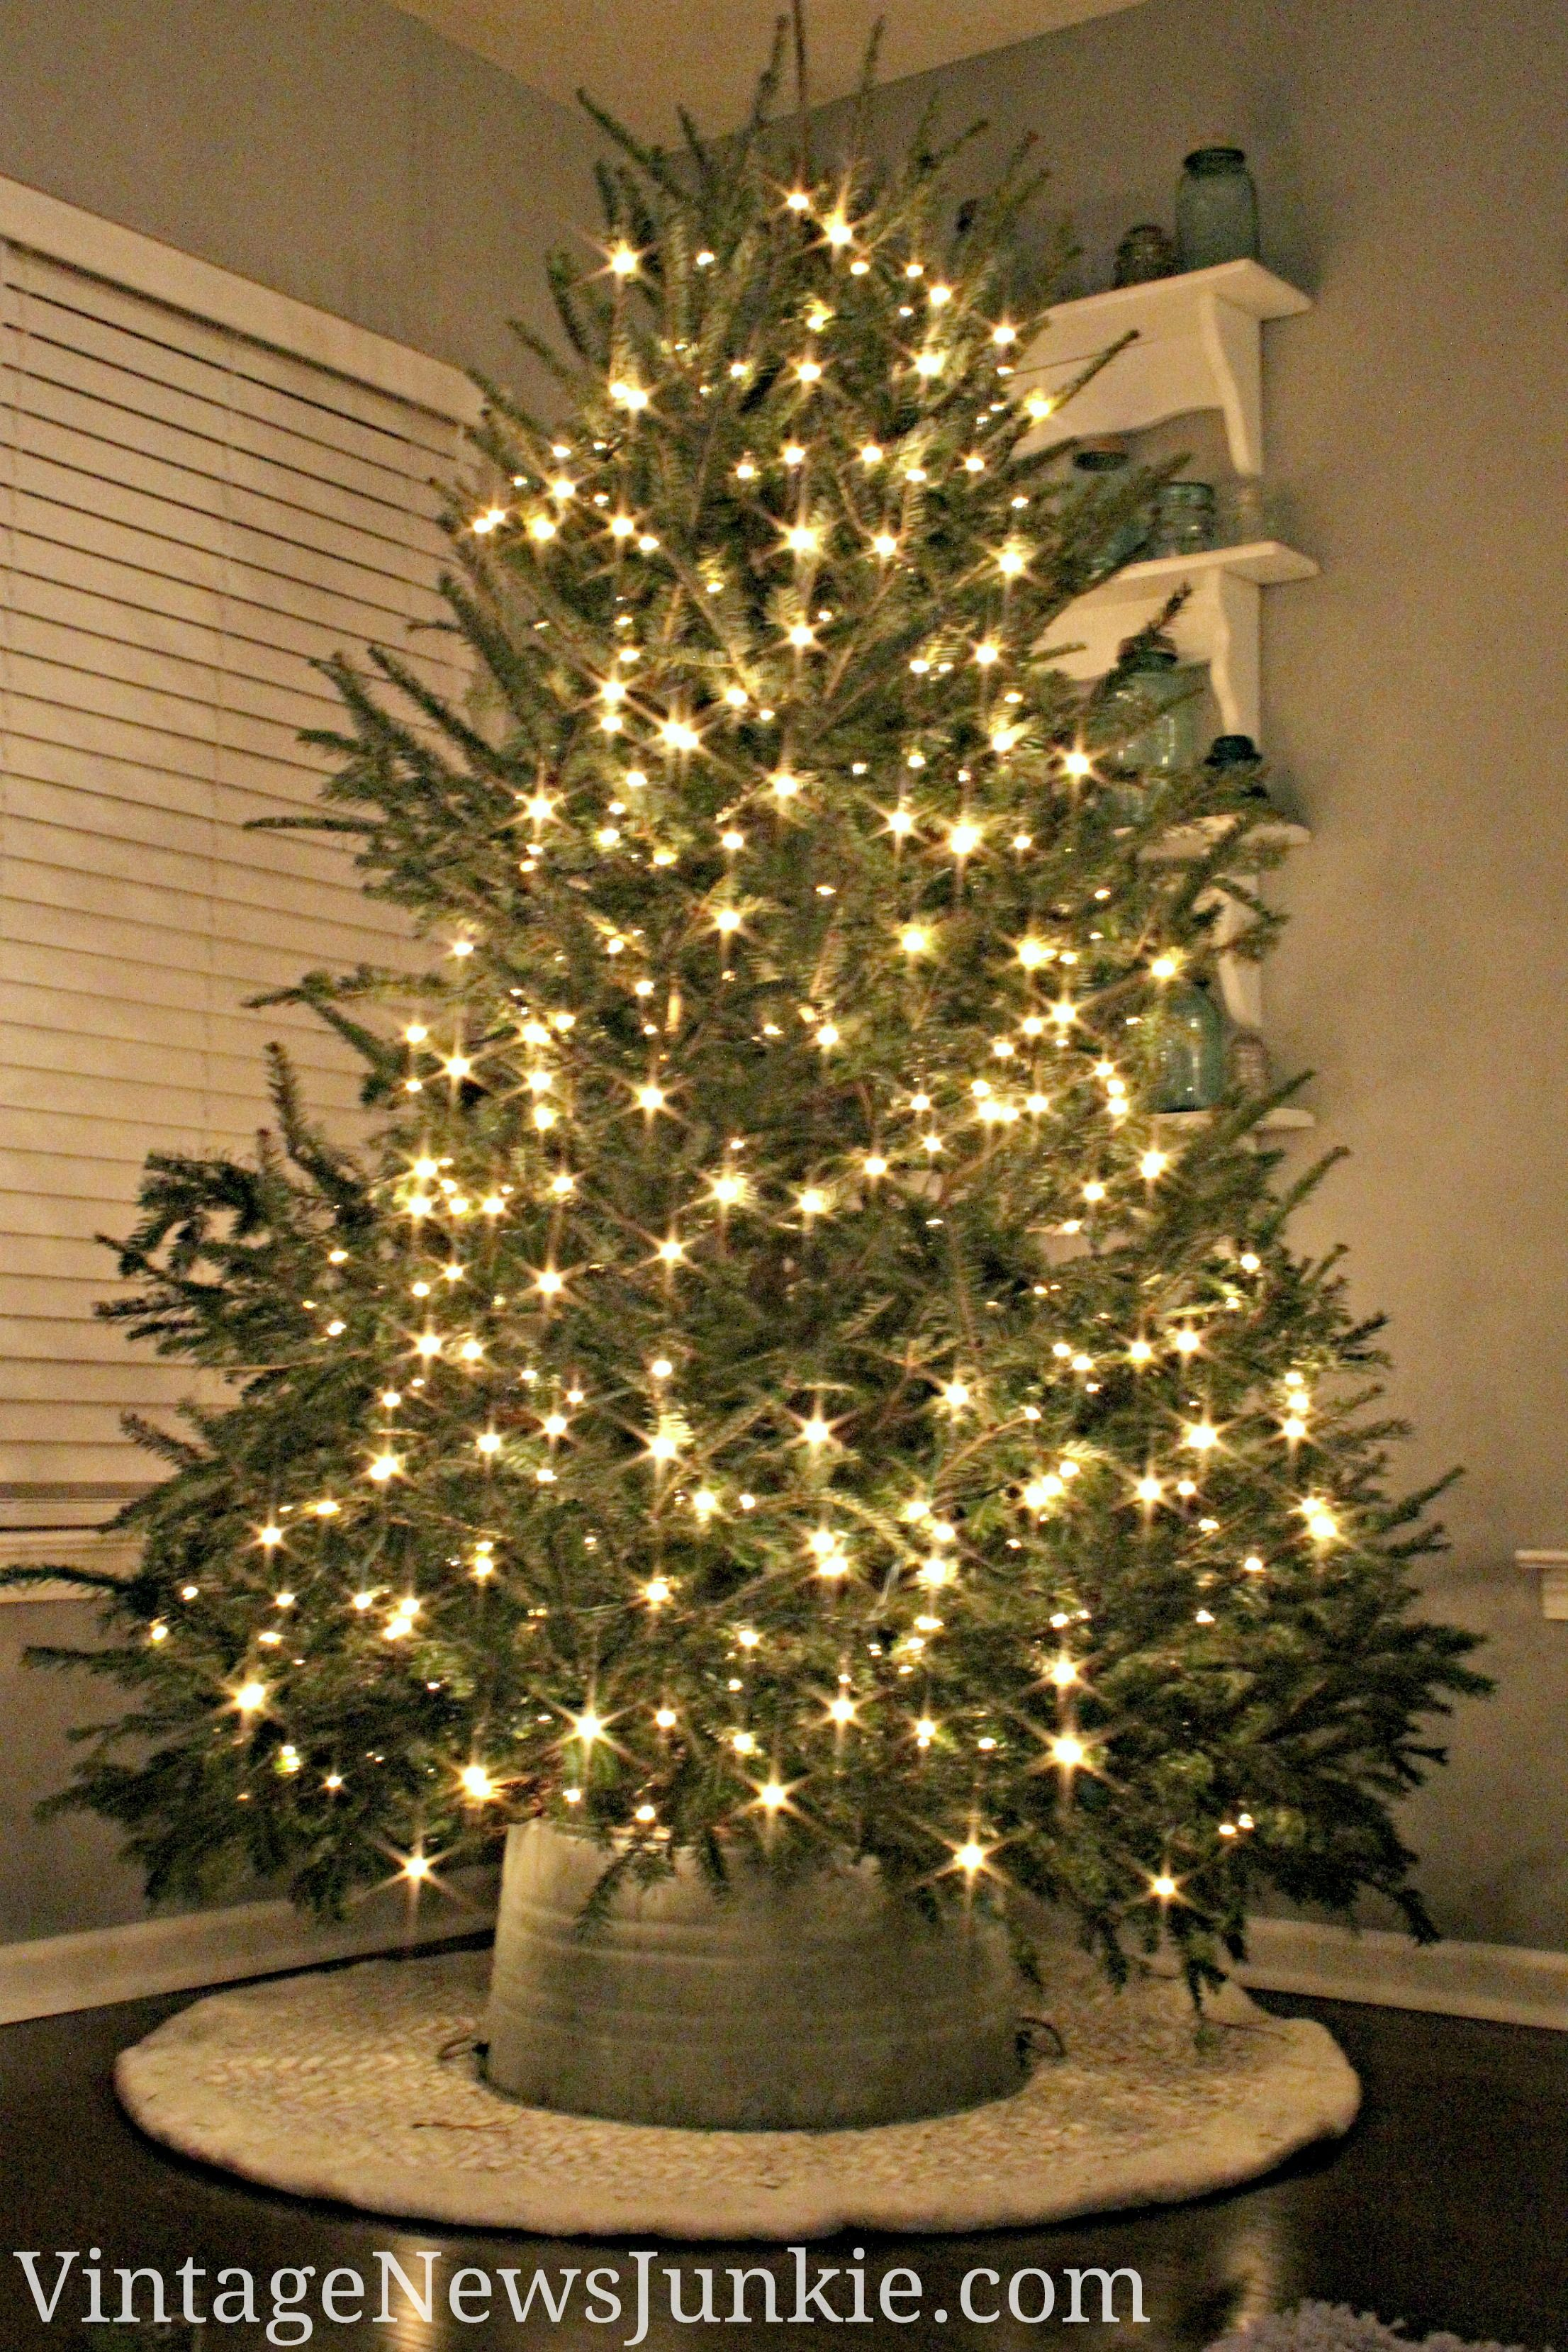 How To Make A Tree Skirt Out Of A Galvanized Tub Crate